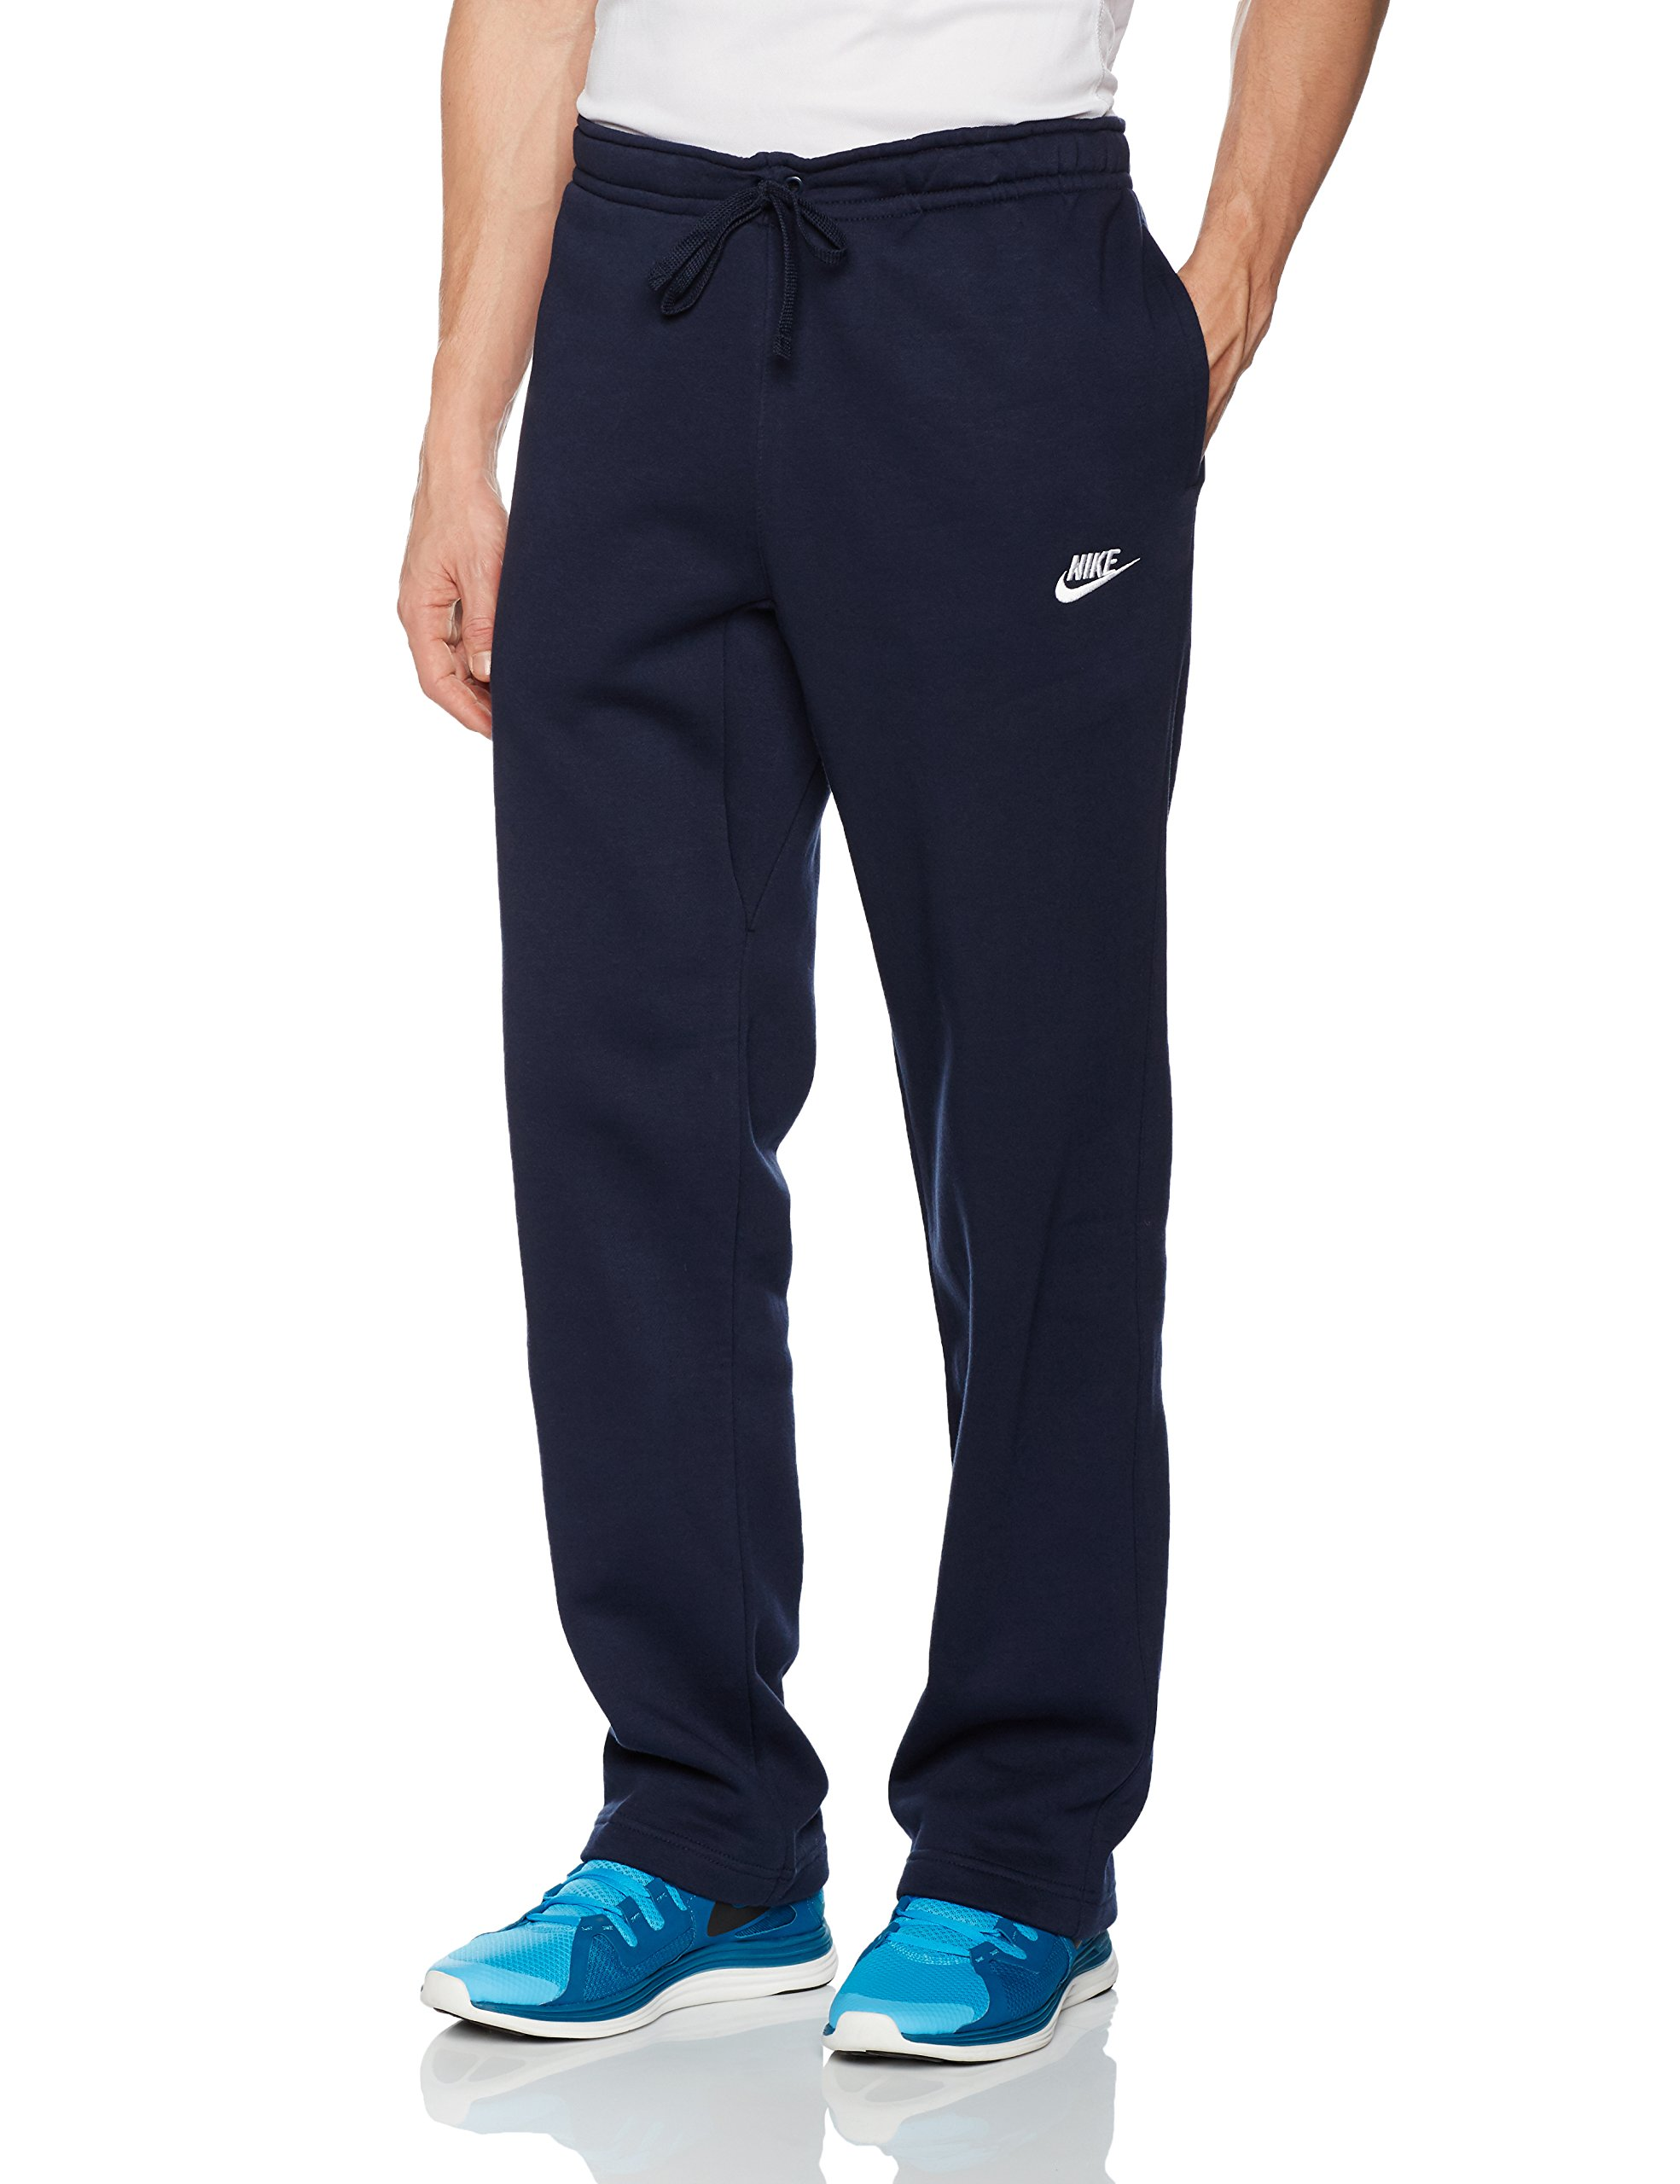 Men's Nike Sportswear Club Sweatpant, Fleece Sweatpants for Men with Pockets, Obsidian/White, M by Nike (Image #1)